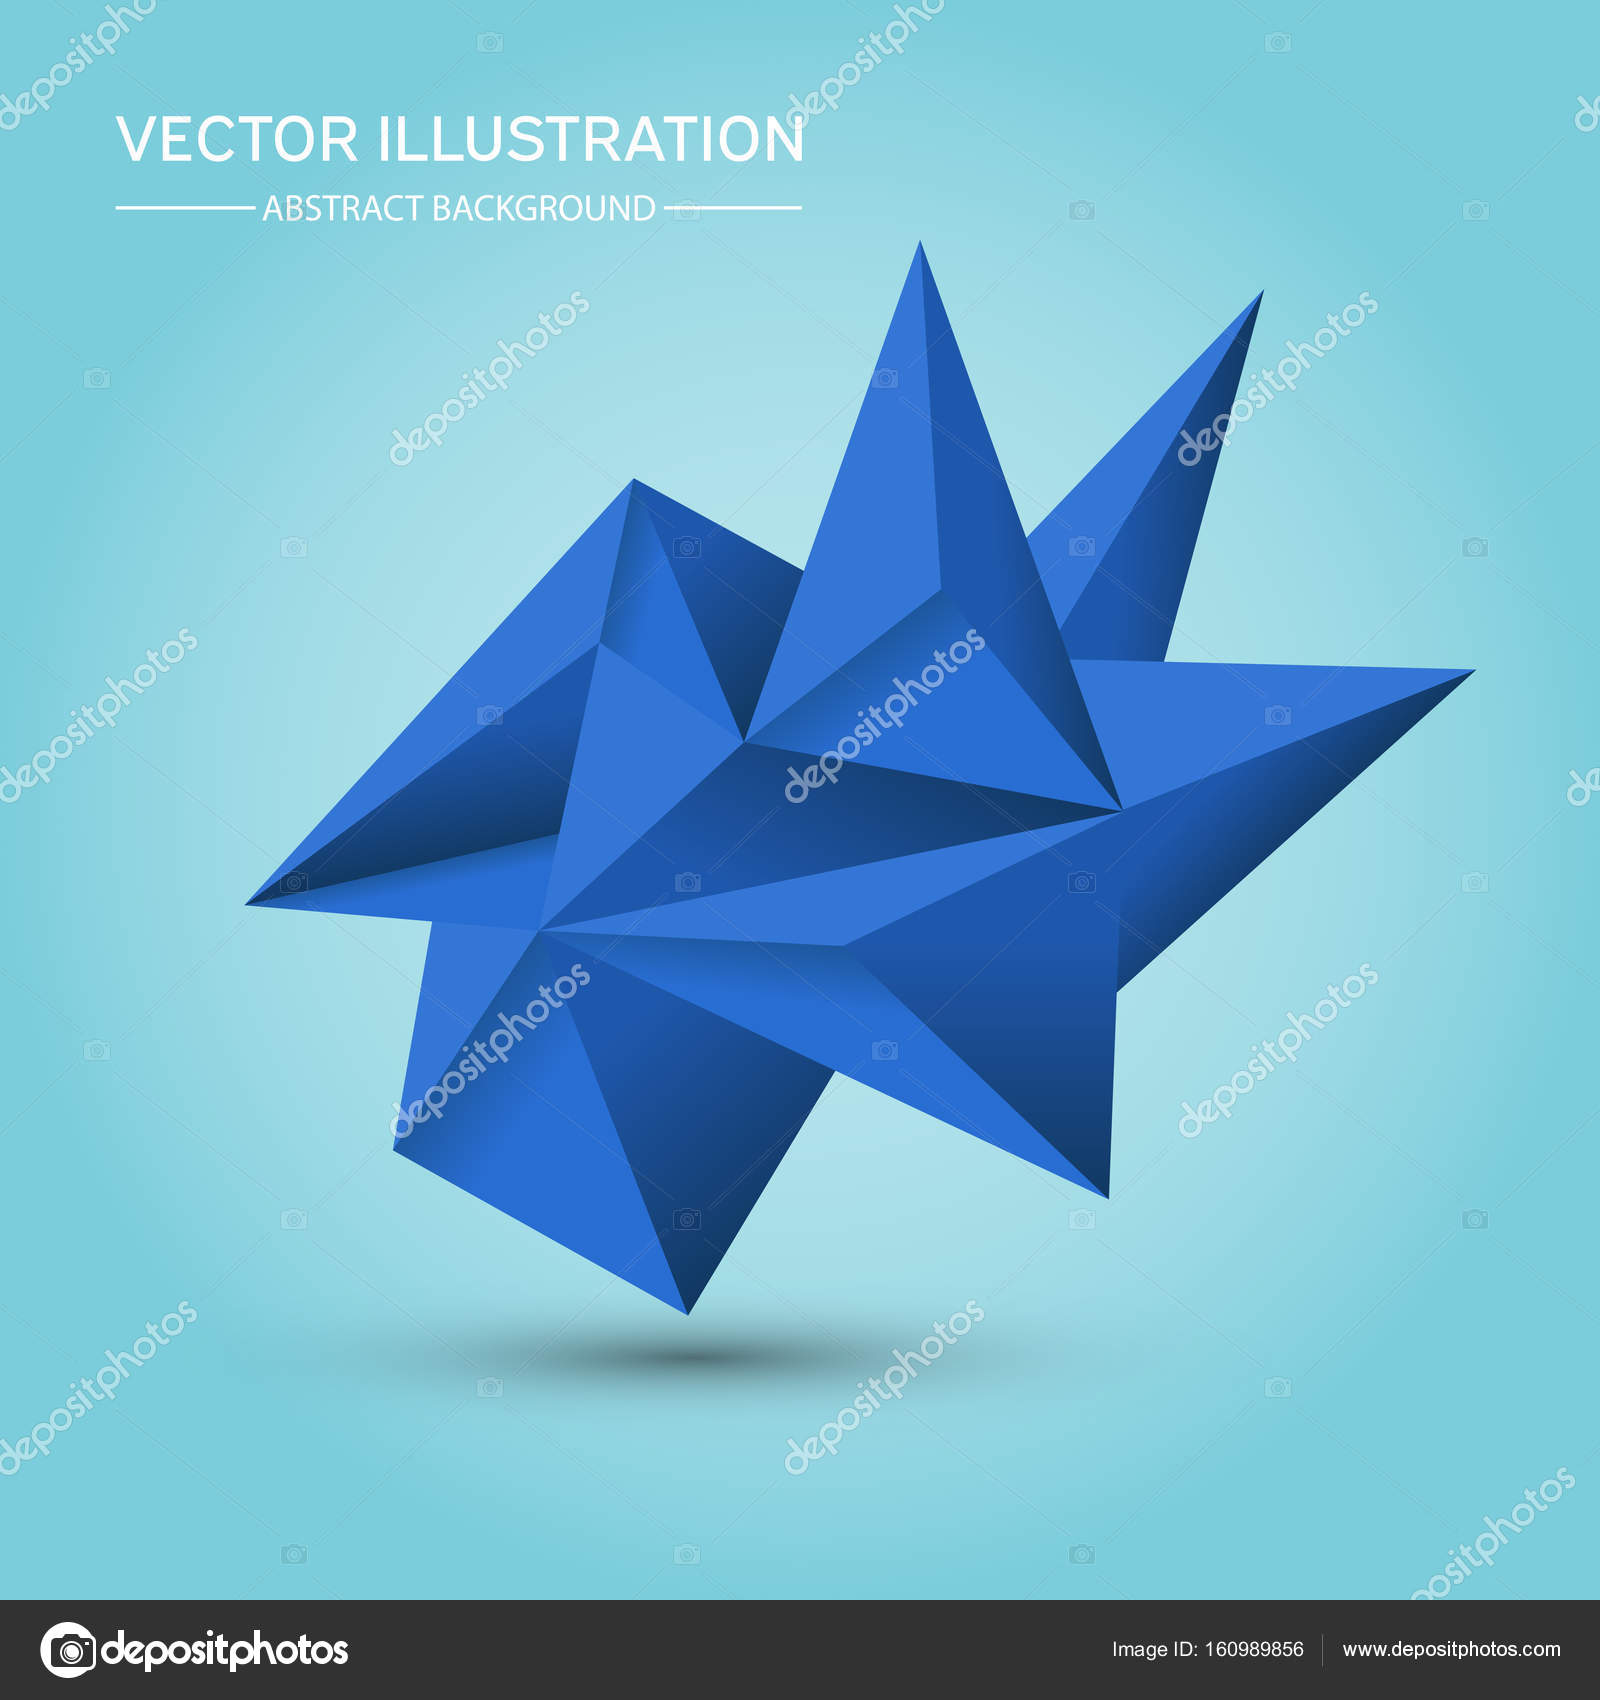 volume geometric shape. abstract polygonal geometric shape. 3d blue